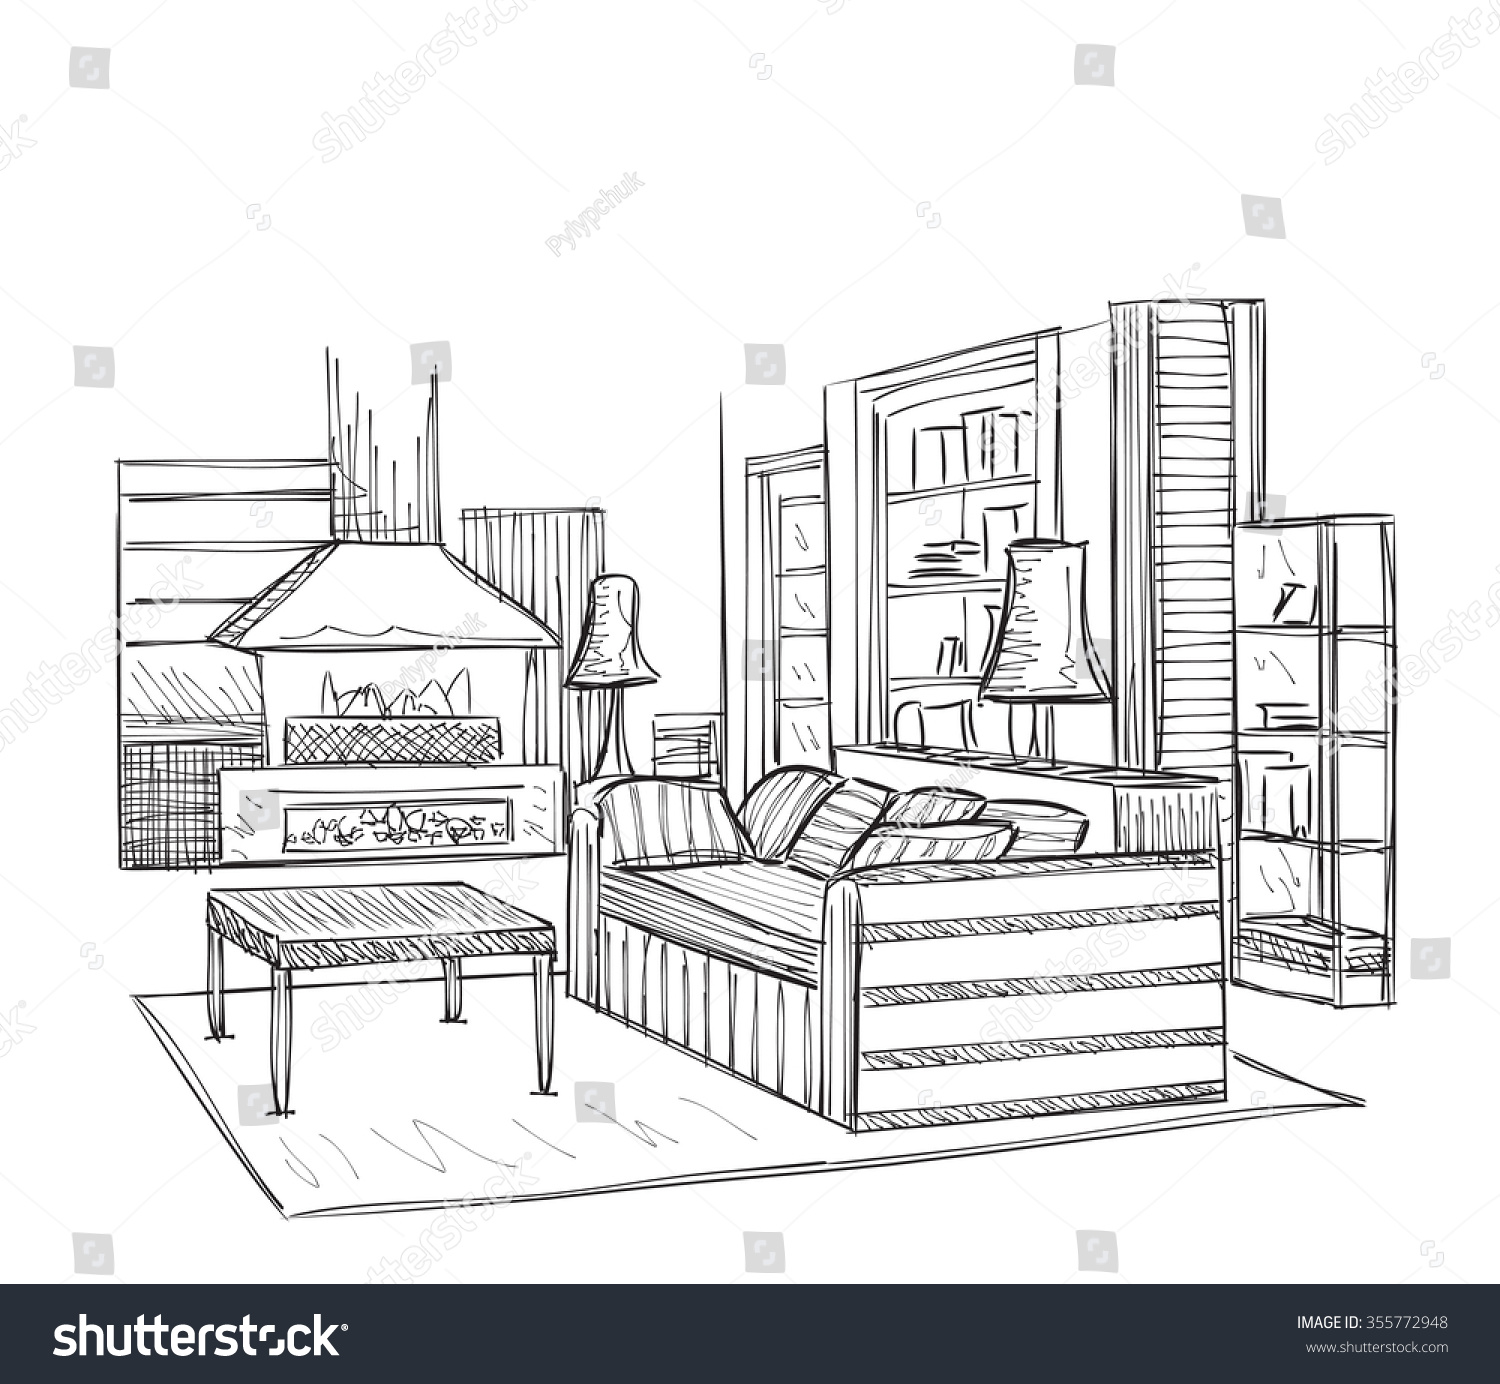 modern interior room sketch hand drawn illustration 355772948